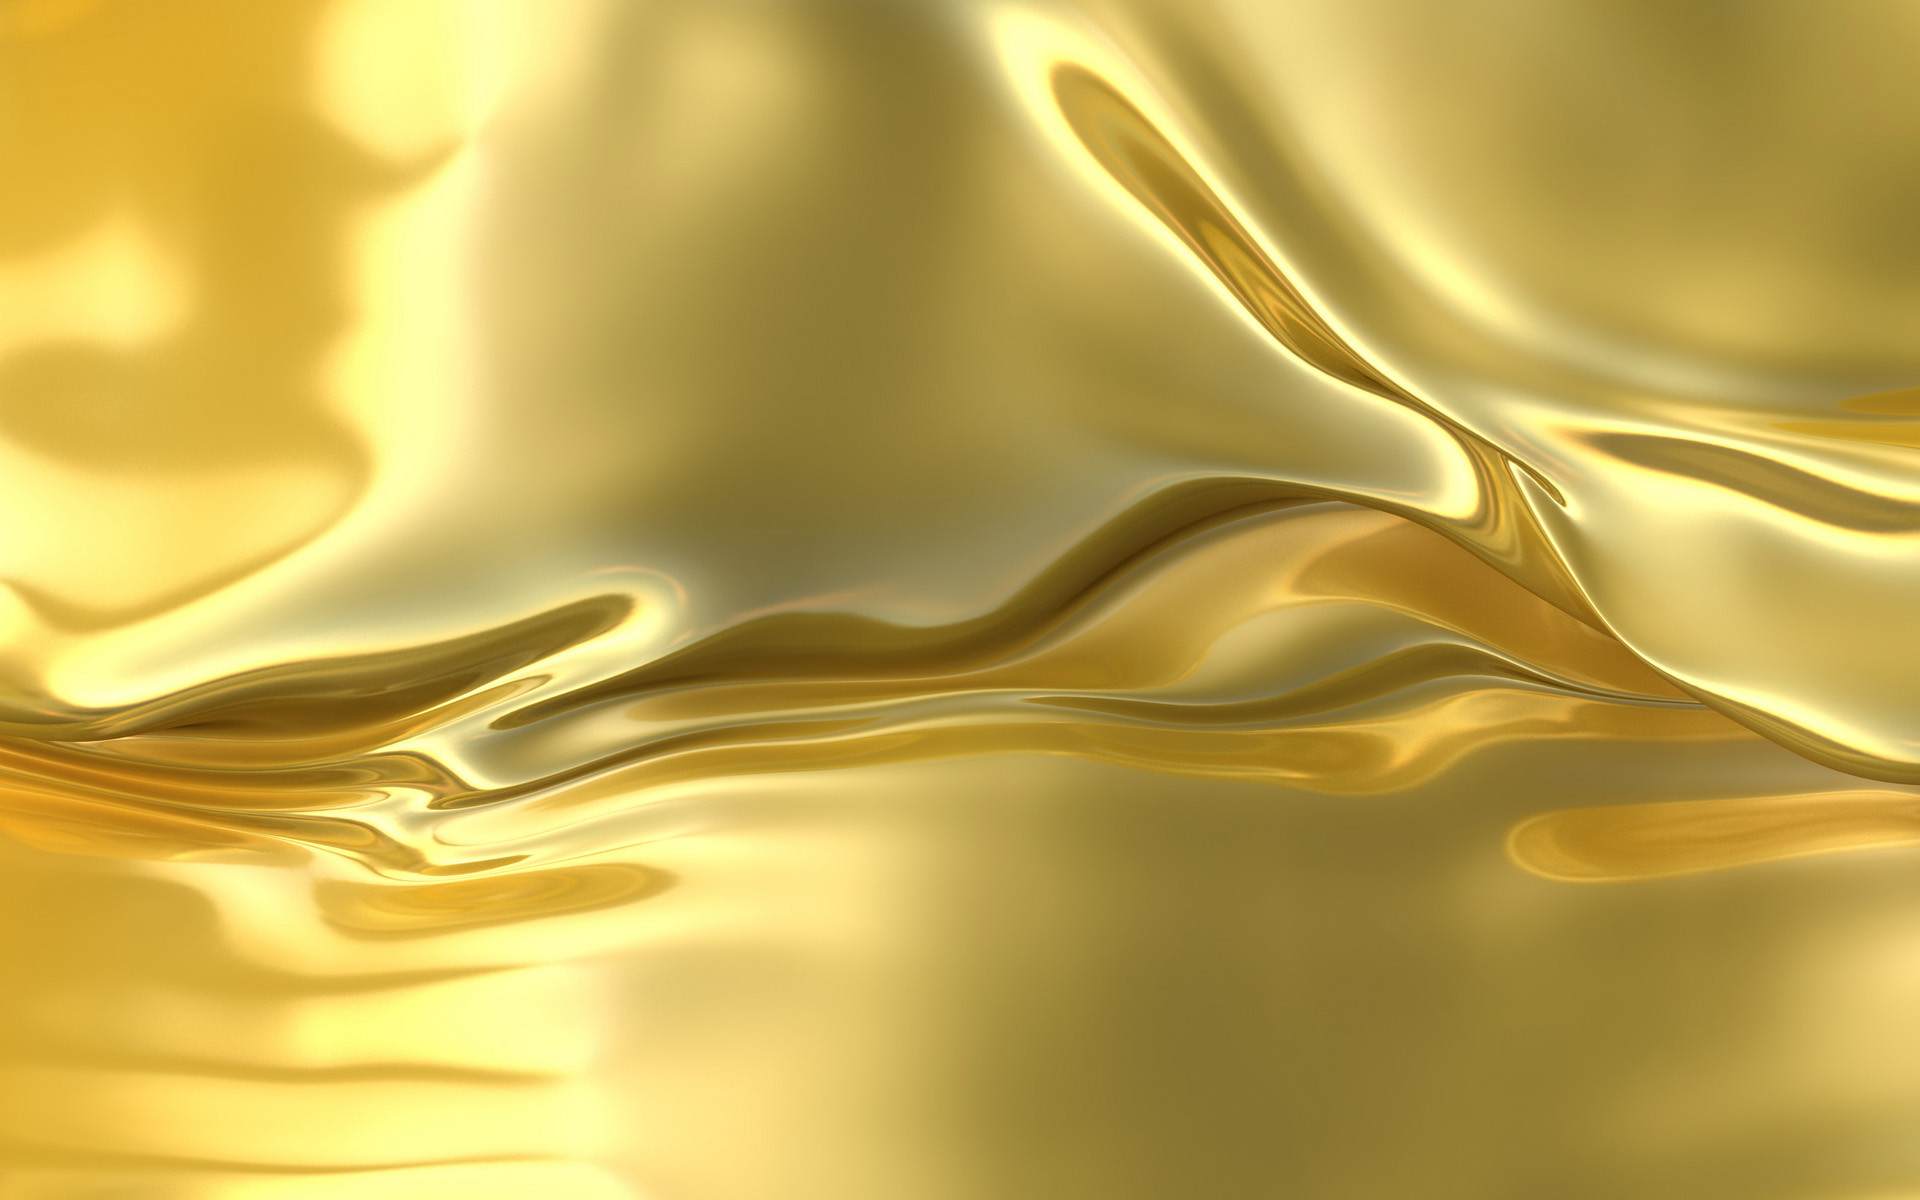 Explore Gold Background, Gold Wallpaper, and more!